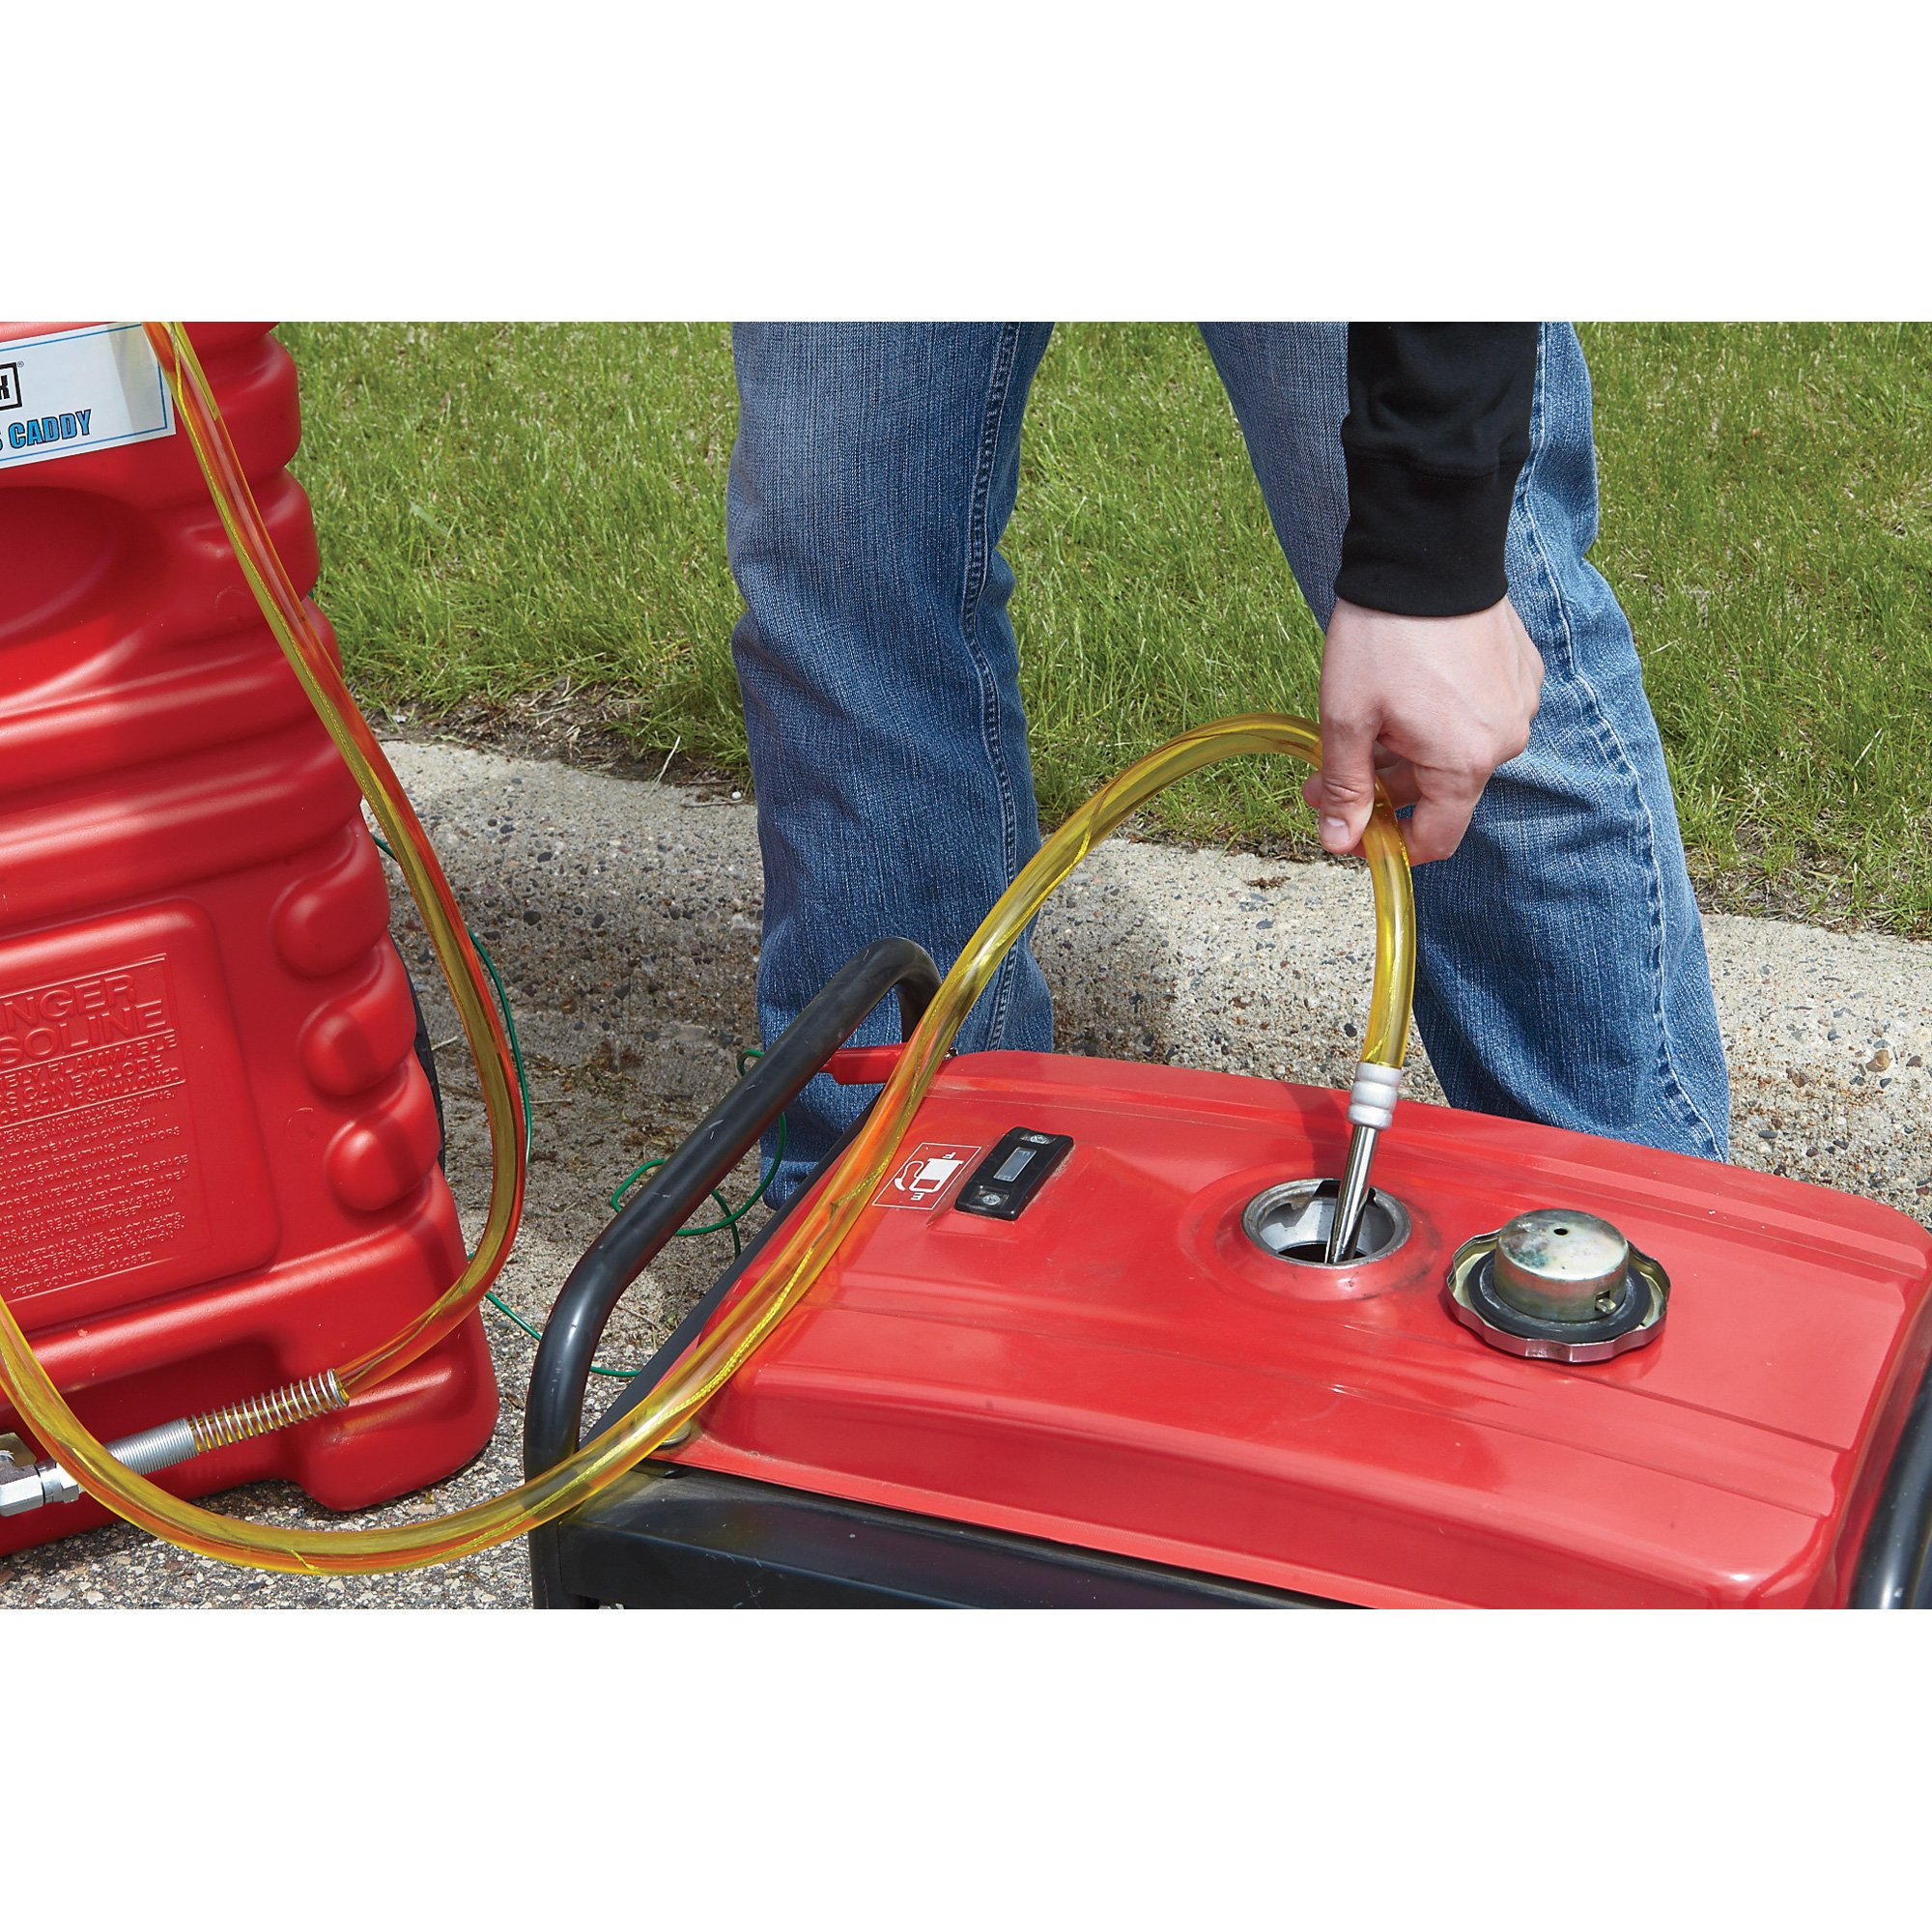 Roughneck Two-Way Rotary Pump Kit - Delivers 1-Gal. Per 12 Revolutions by Roughneck (Image #3)